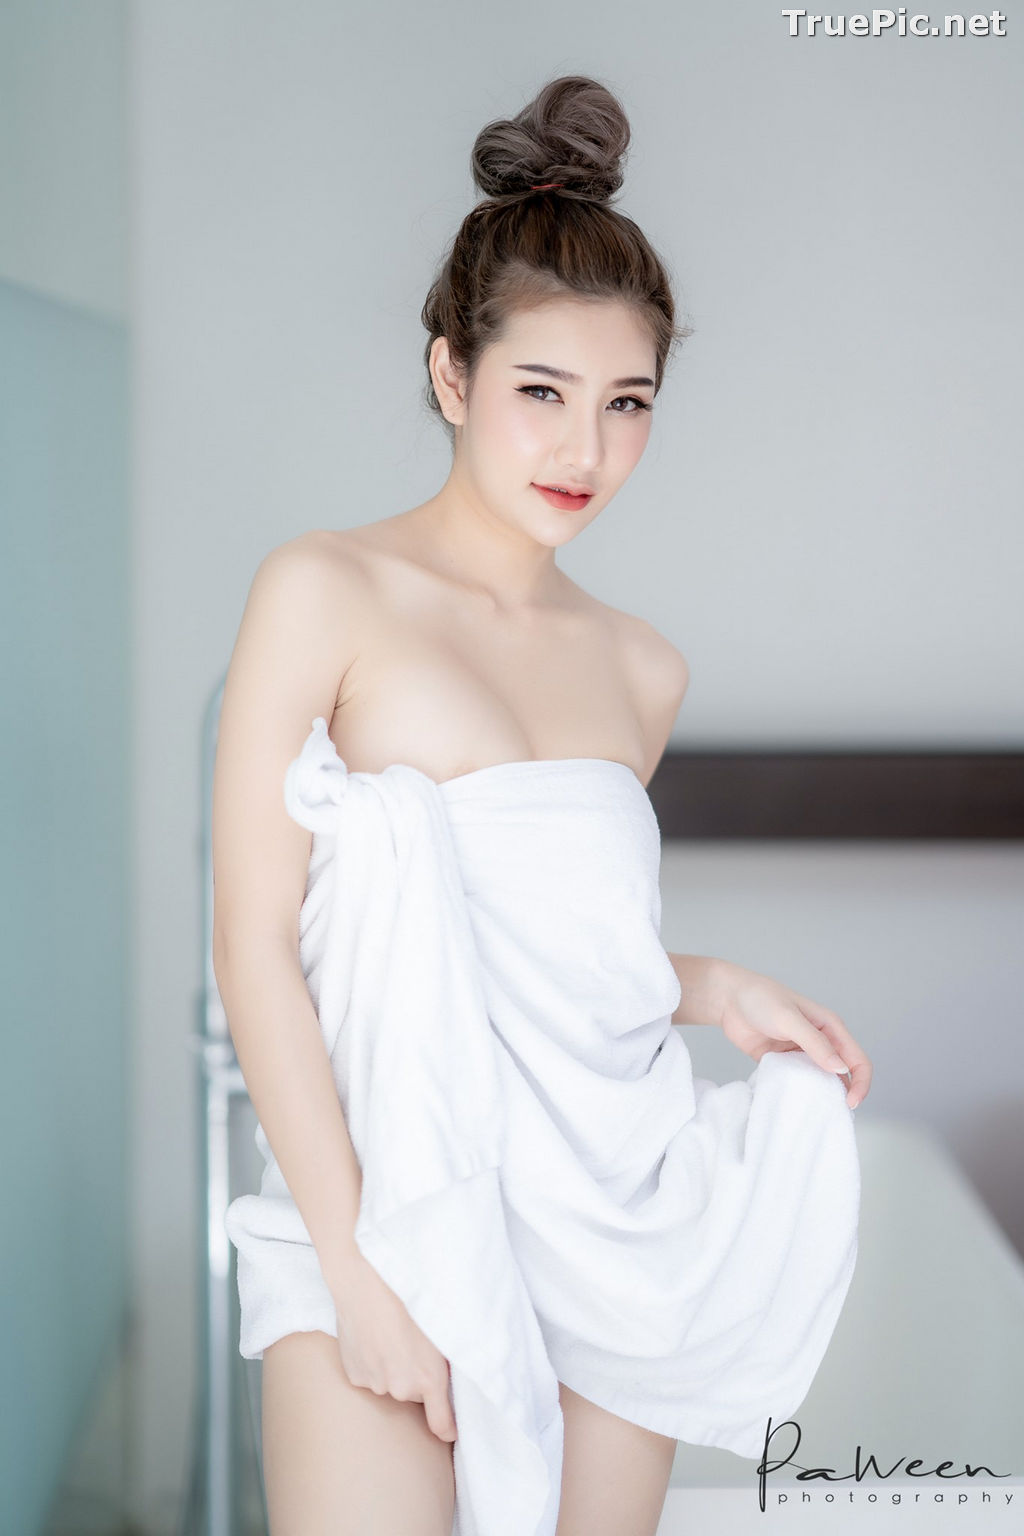 Image Thailand Model - Atittaya Chaiyasing - Take Shower After a Nice Day - TruePic.net - Picture-7